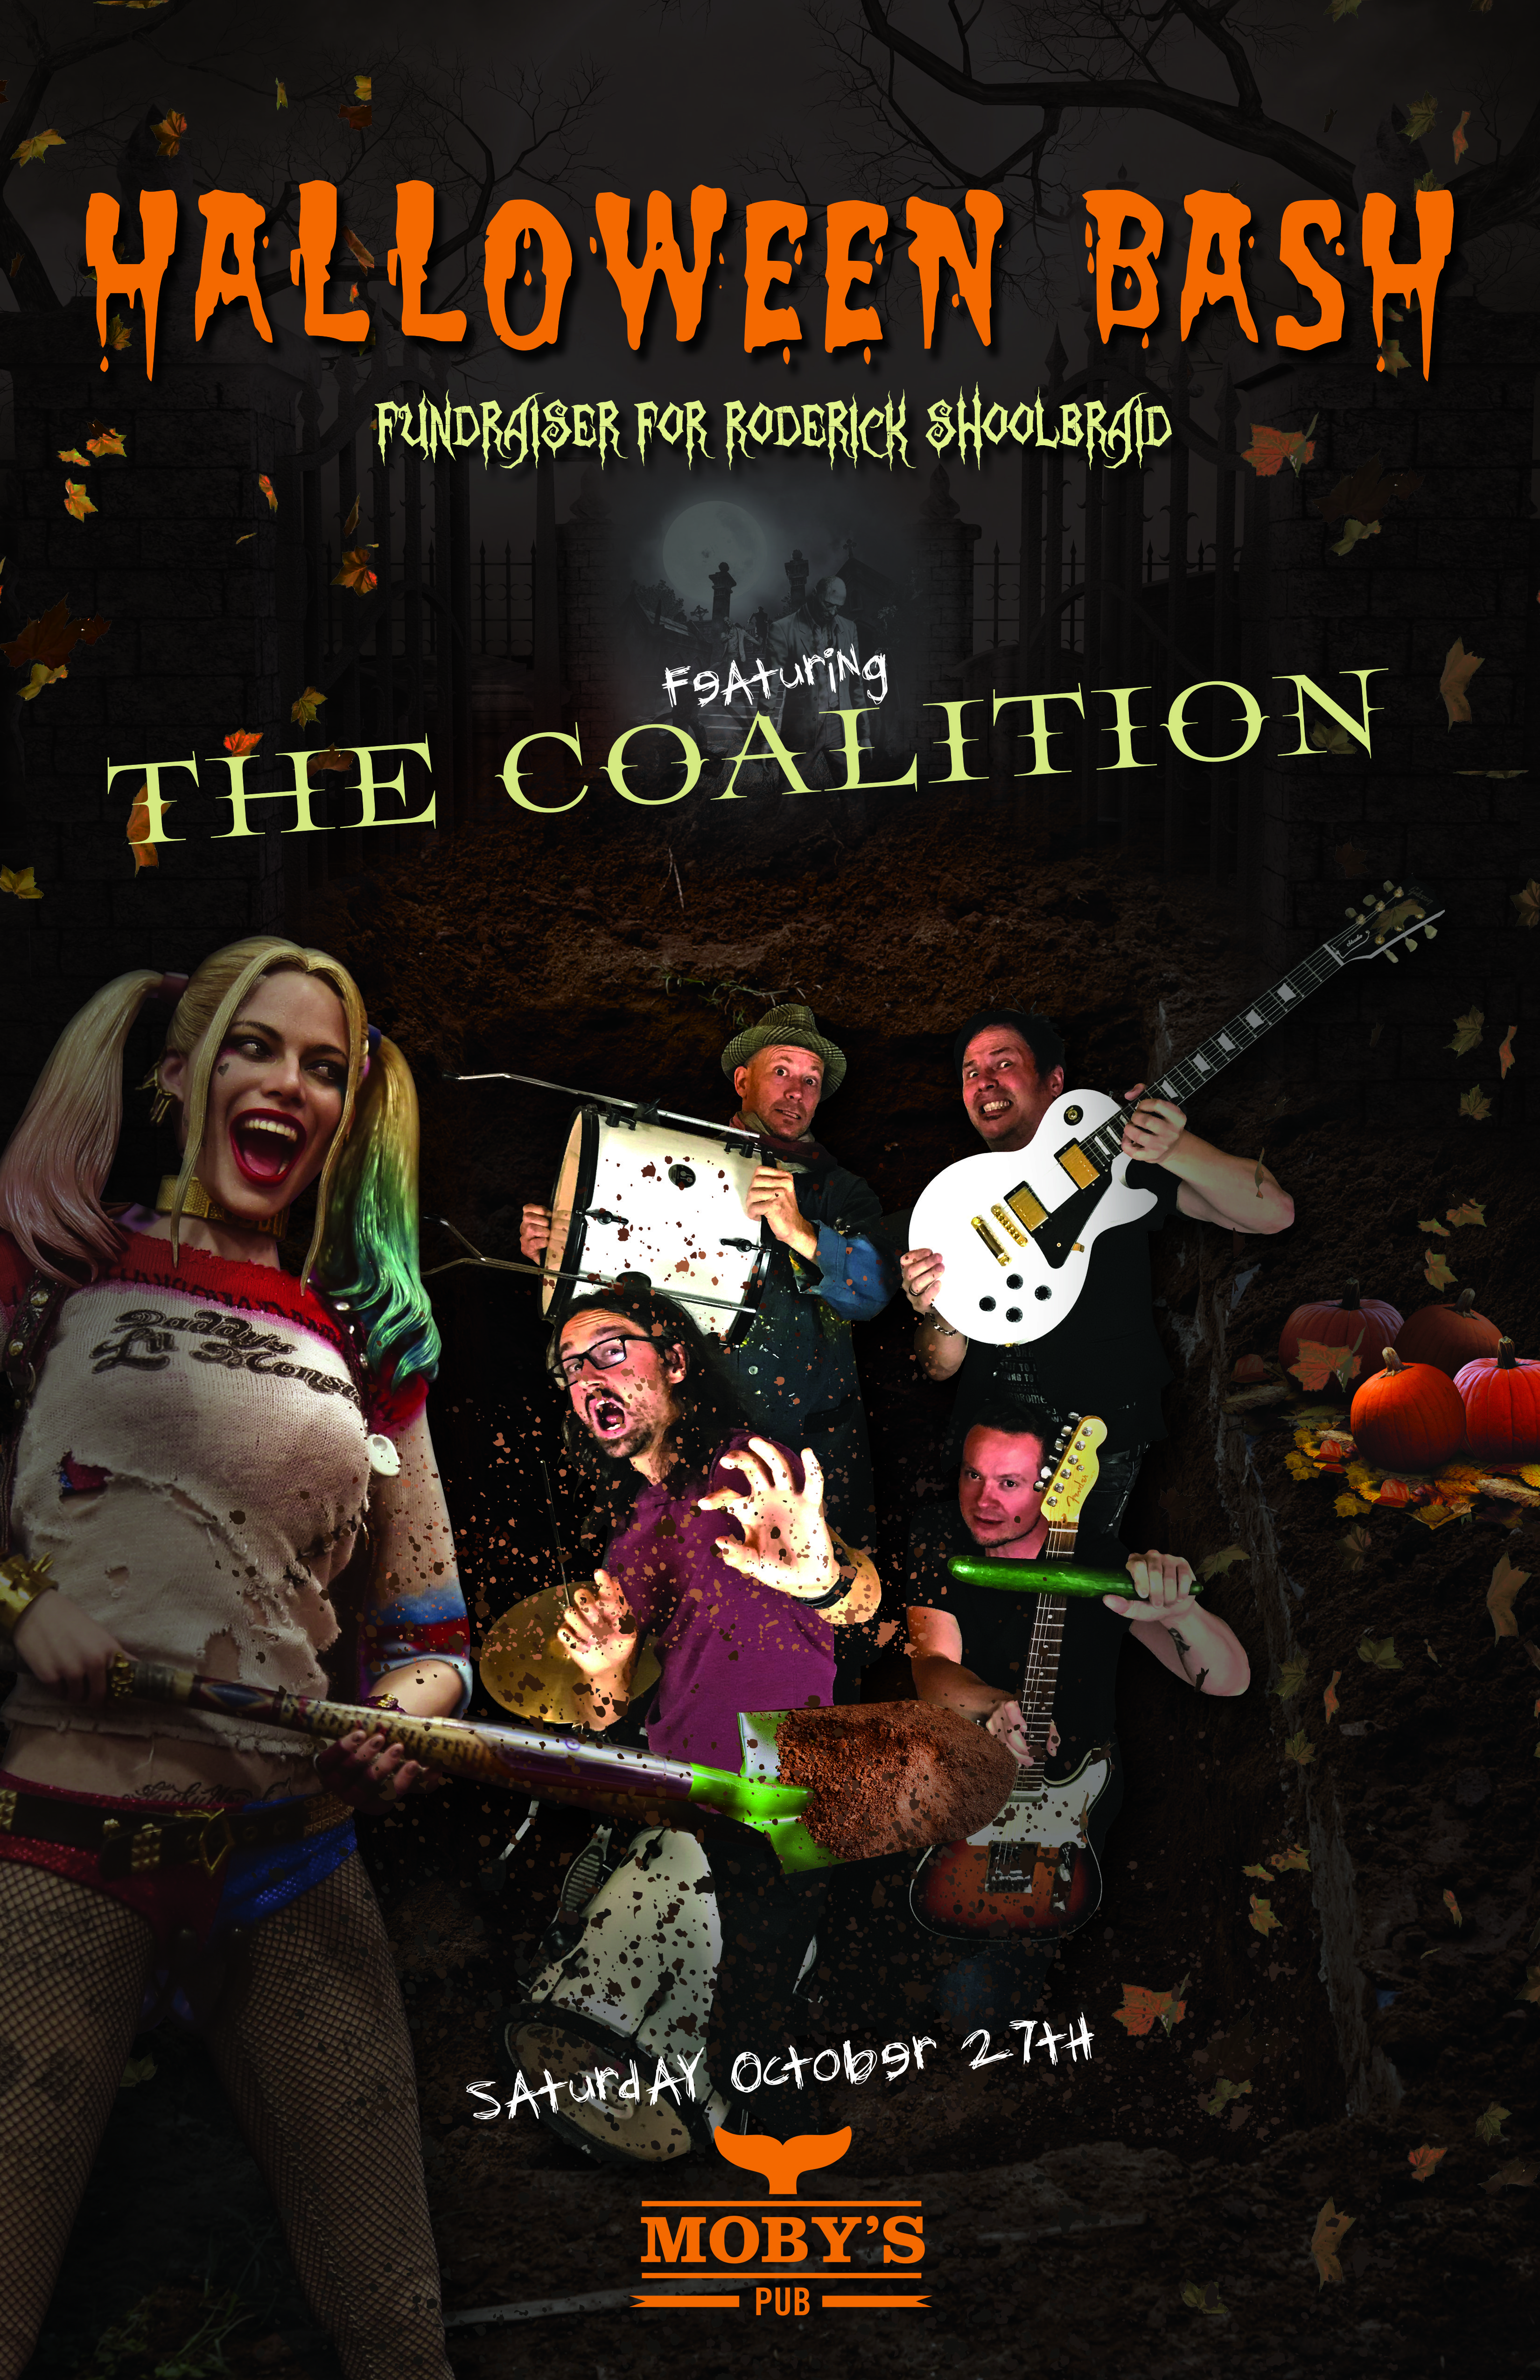 The Coalition Halloween Bash and Fundraiser - October 27th @ Moby's Pub